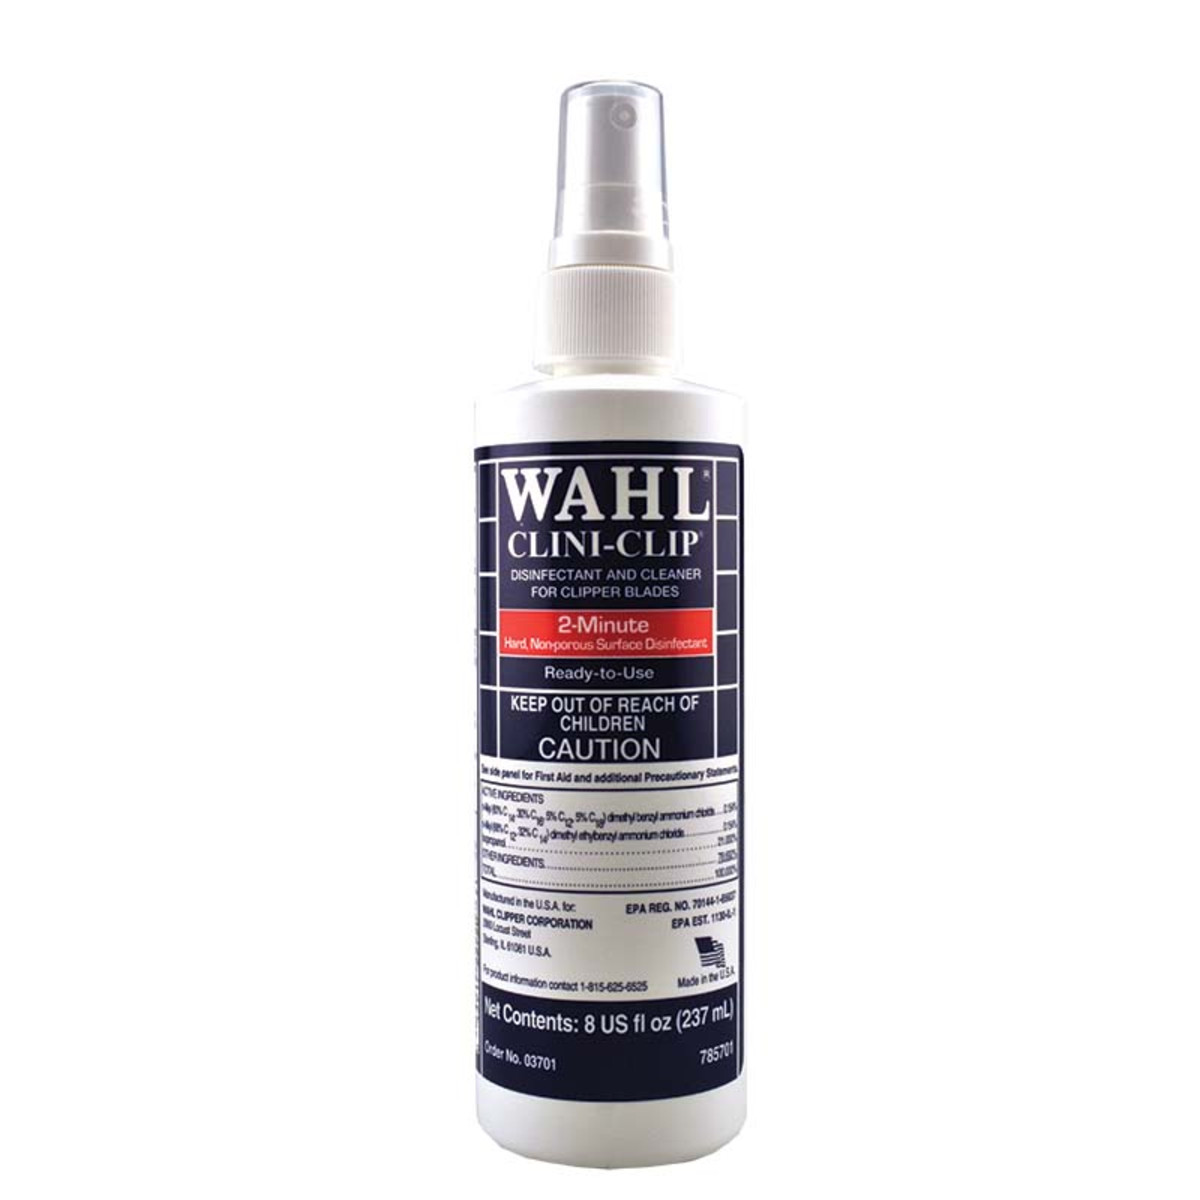 Wahl CliniClip Disinfectant Spray